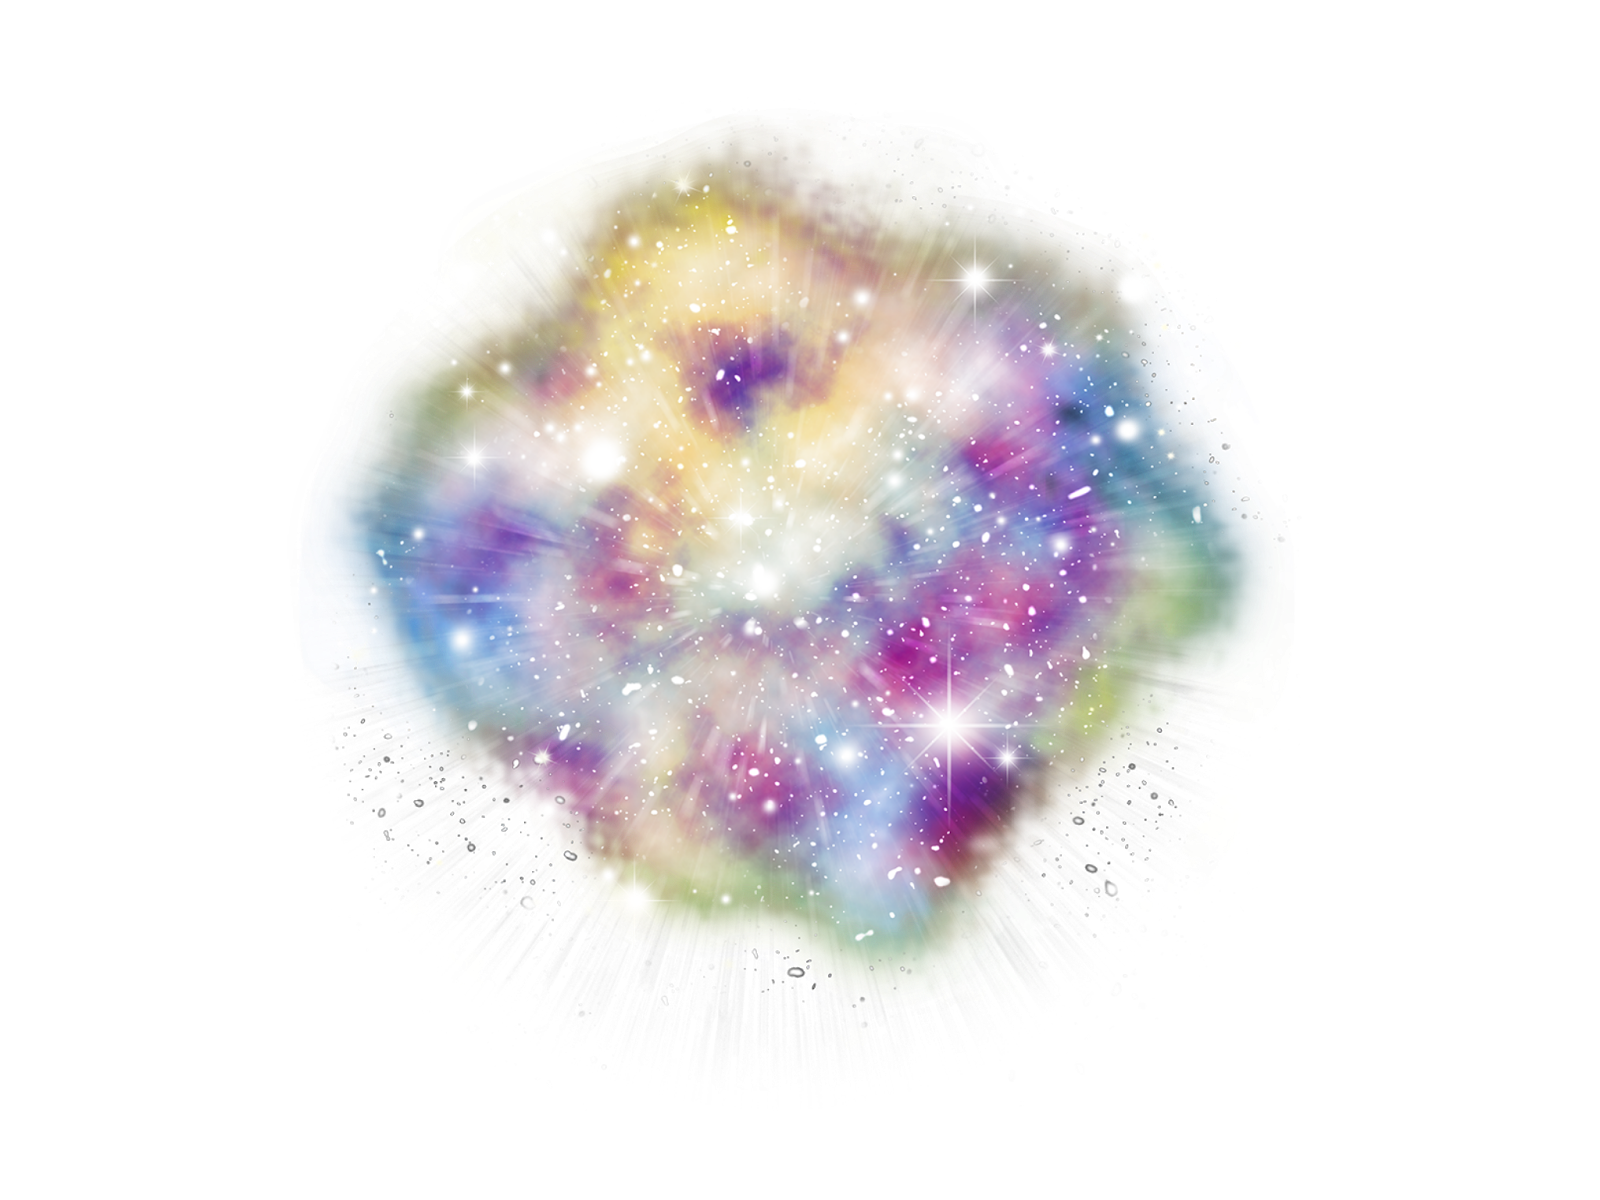 Star dust png. Stardust for editors who